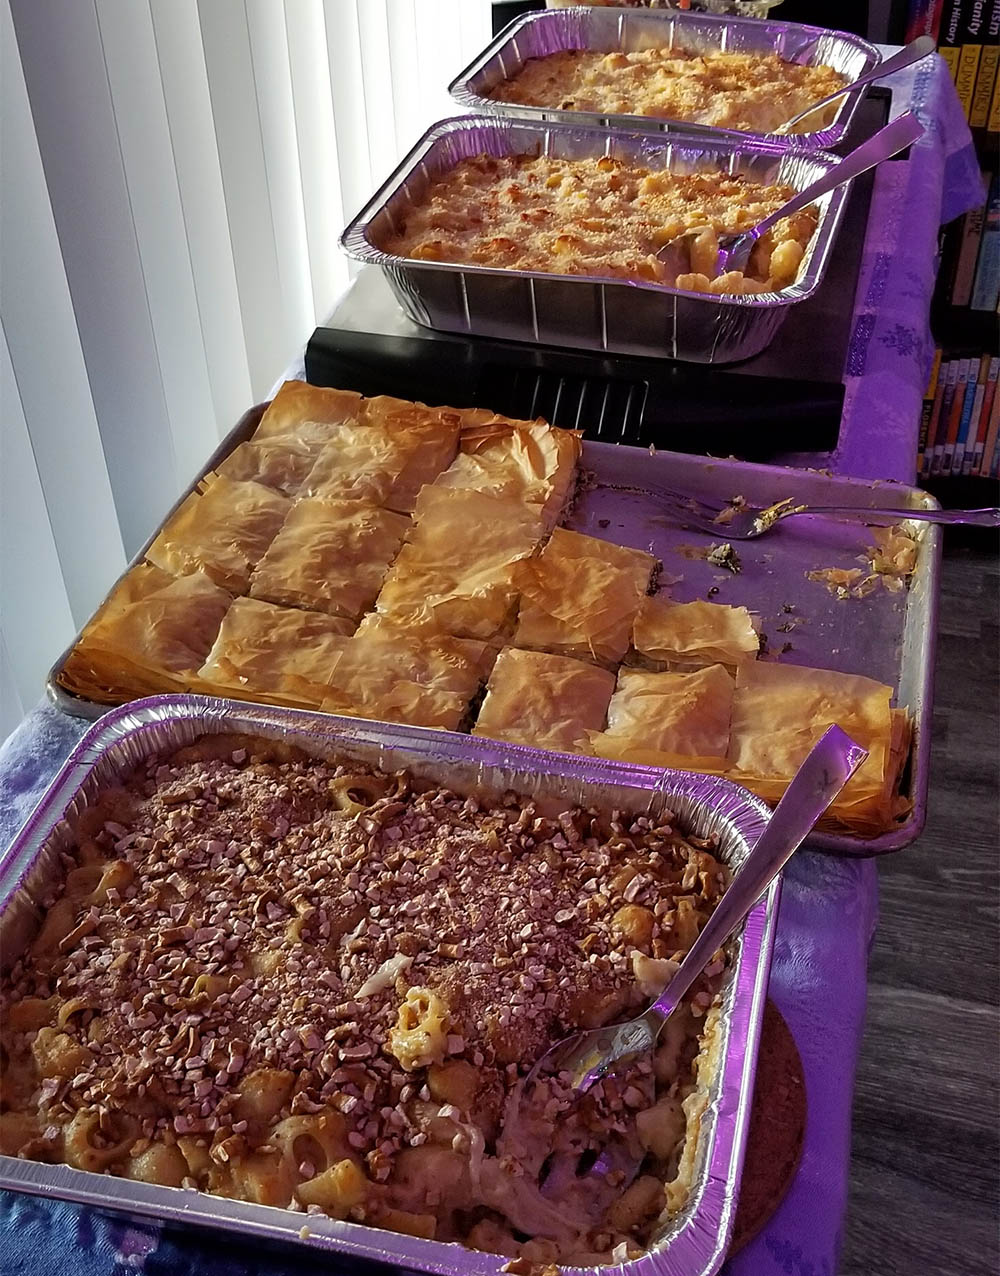 The German Mac N Cheese in the foreground with the pretzel topping along with Spanikoptia and two more Mac N Cheese pans at the top.